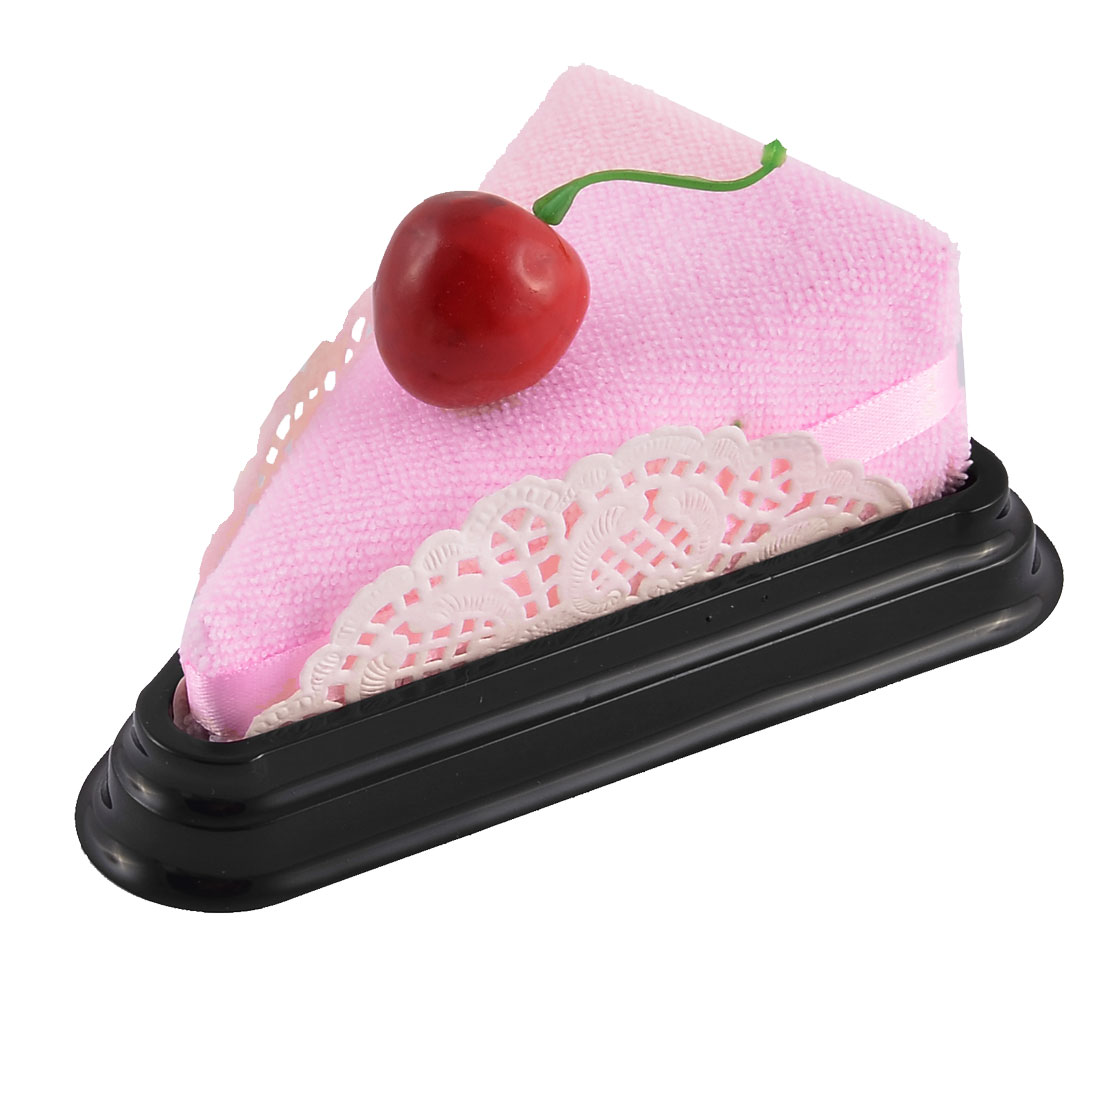 Simulated Cherry Detail Triangular Cake Sandwich Towel Washcloth Decor Gift Pink